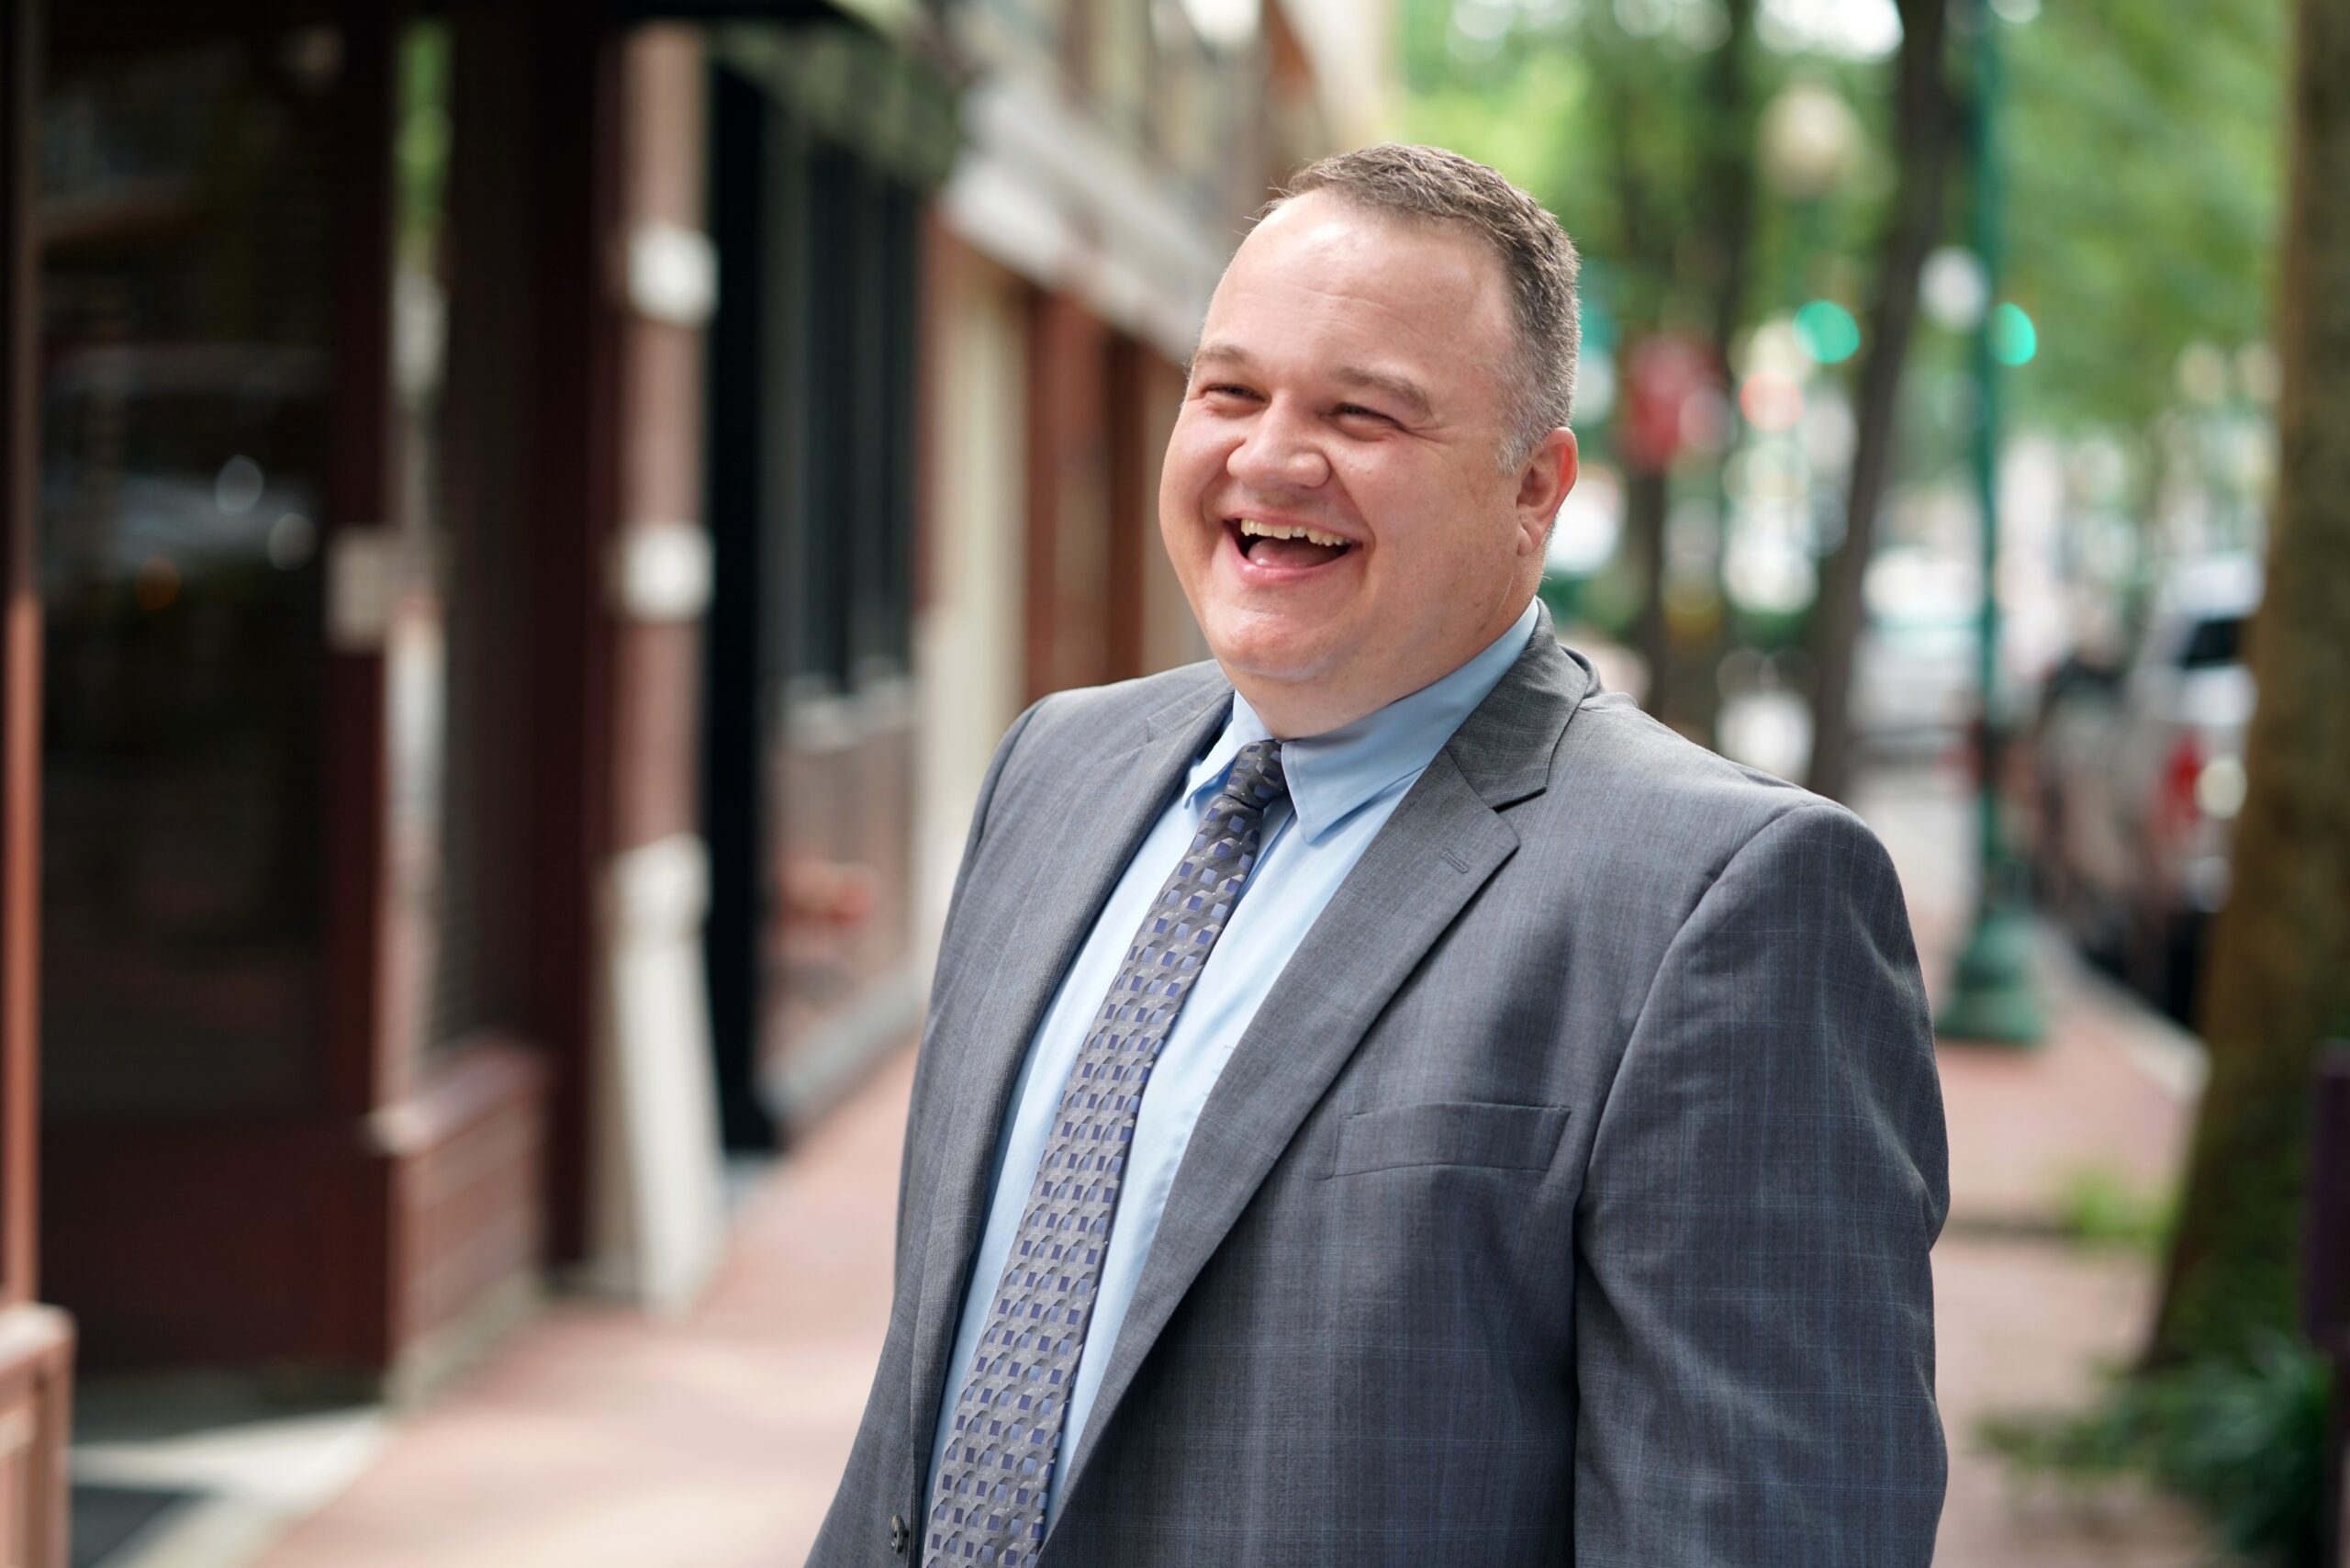 Headshot of BJ Evans, Stonerise Chief Information Officer